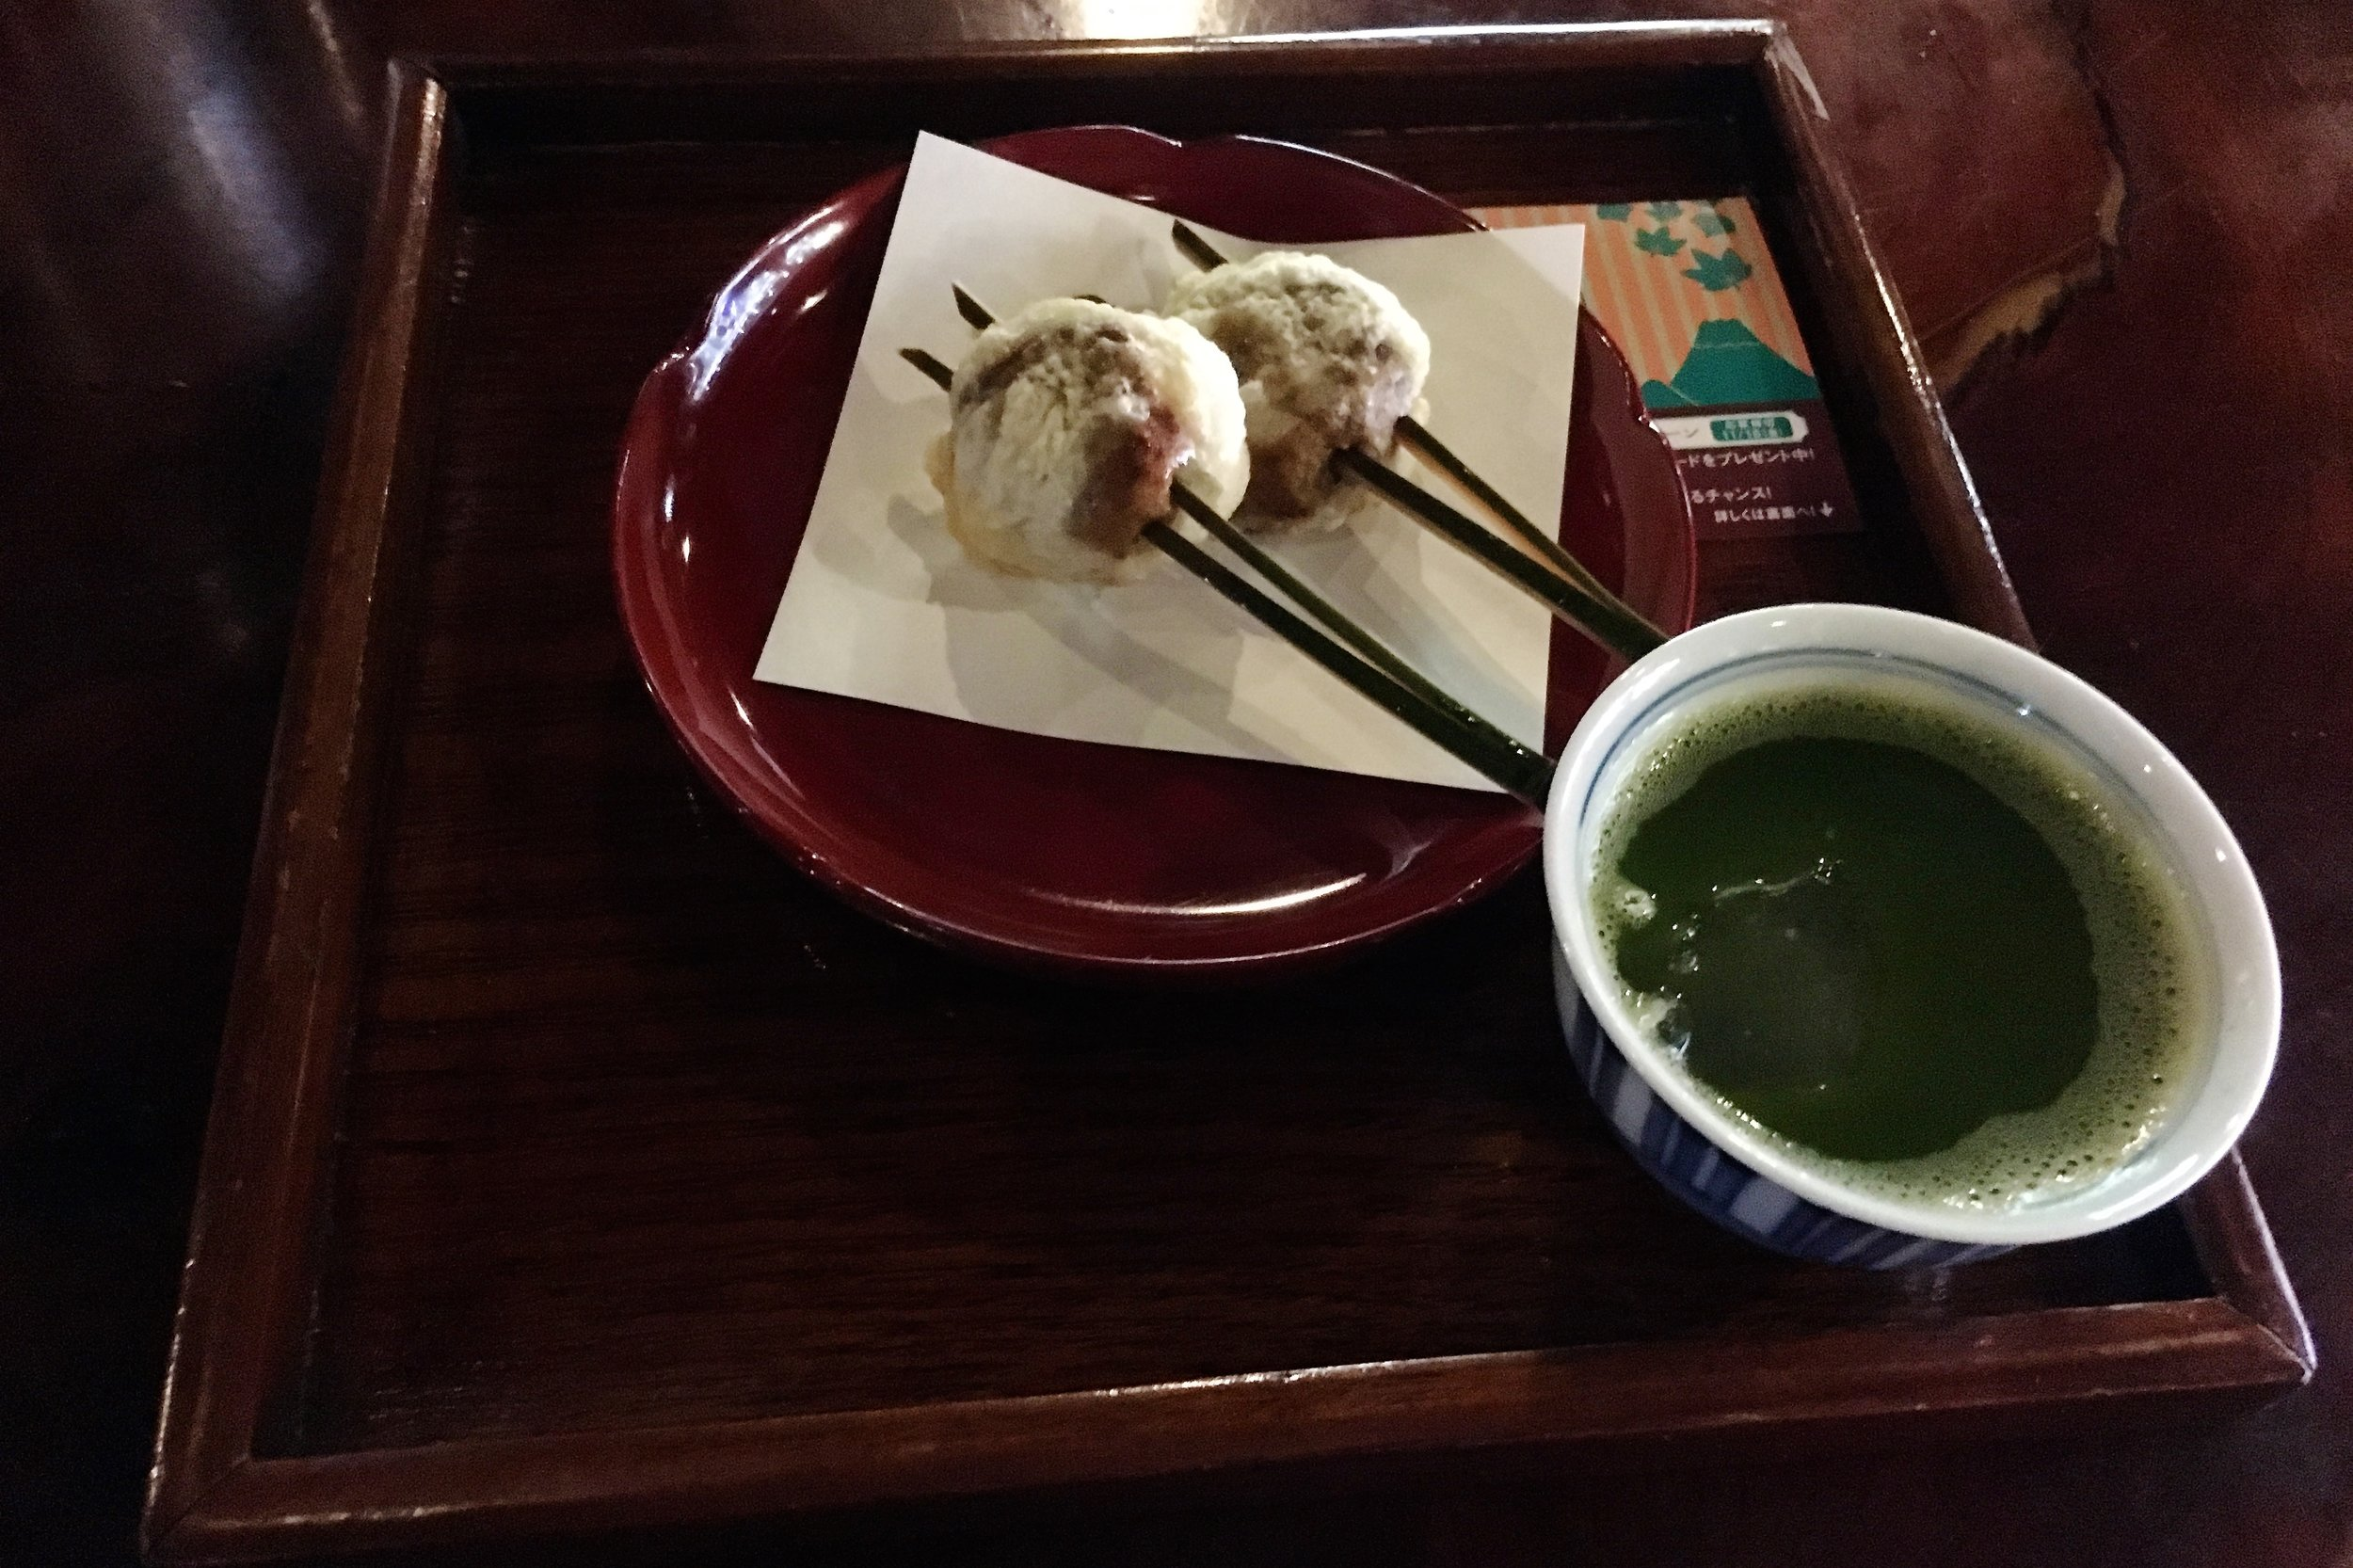 Fried mochi and thick green tea with an ice cube in it